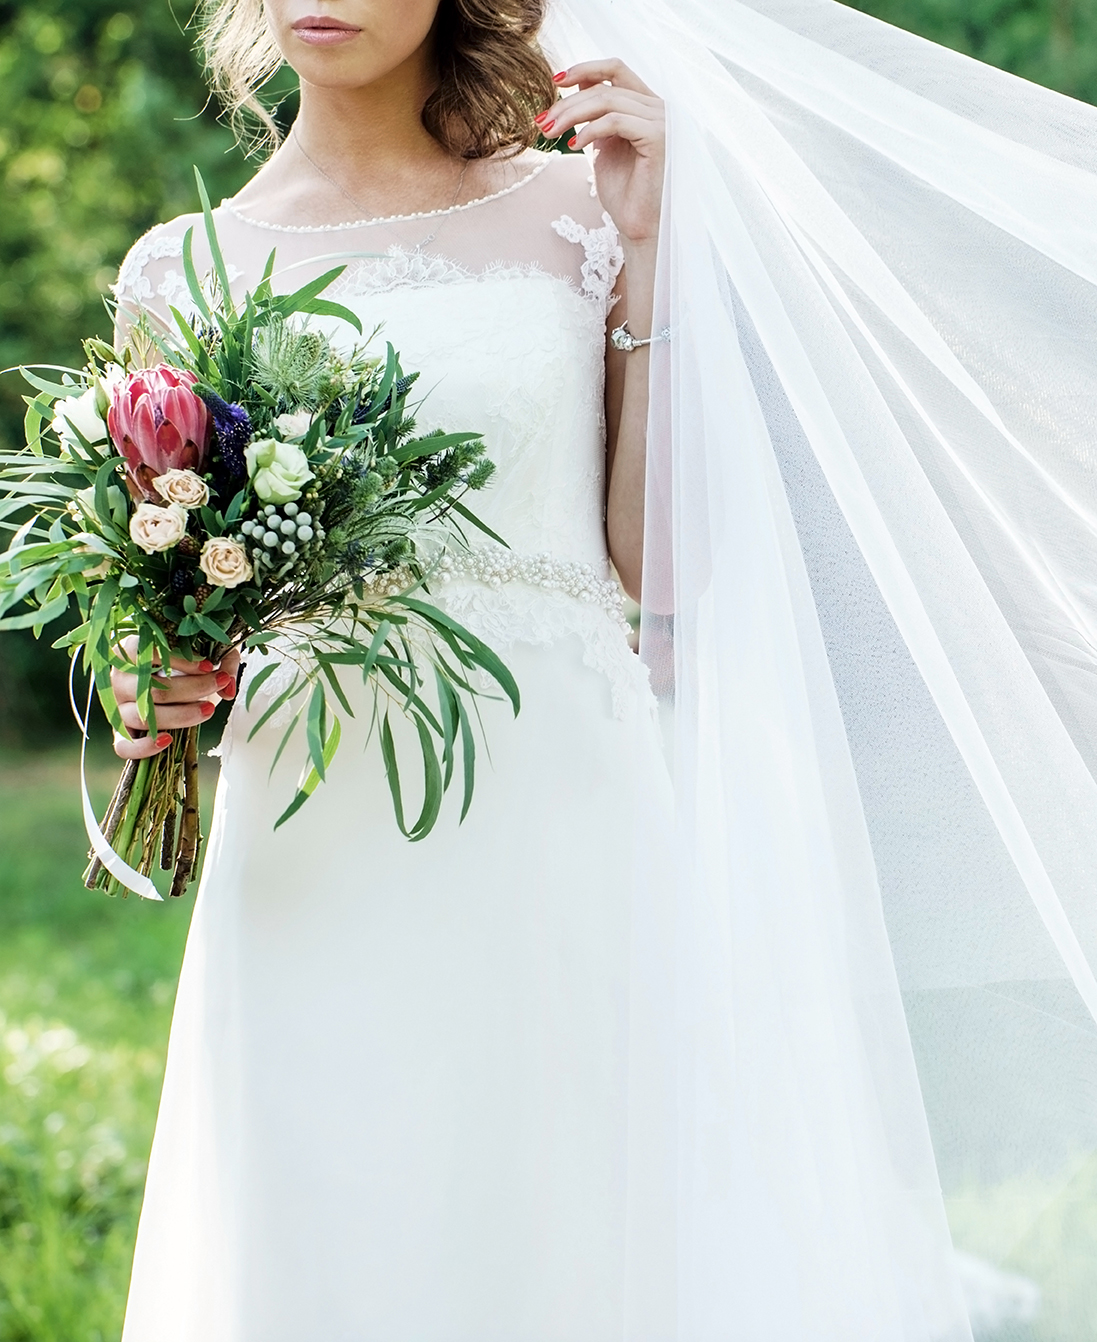 Wedding Gown Care in Omaha | Fashion Cleaners